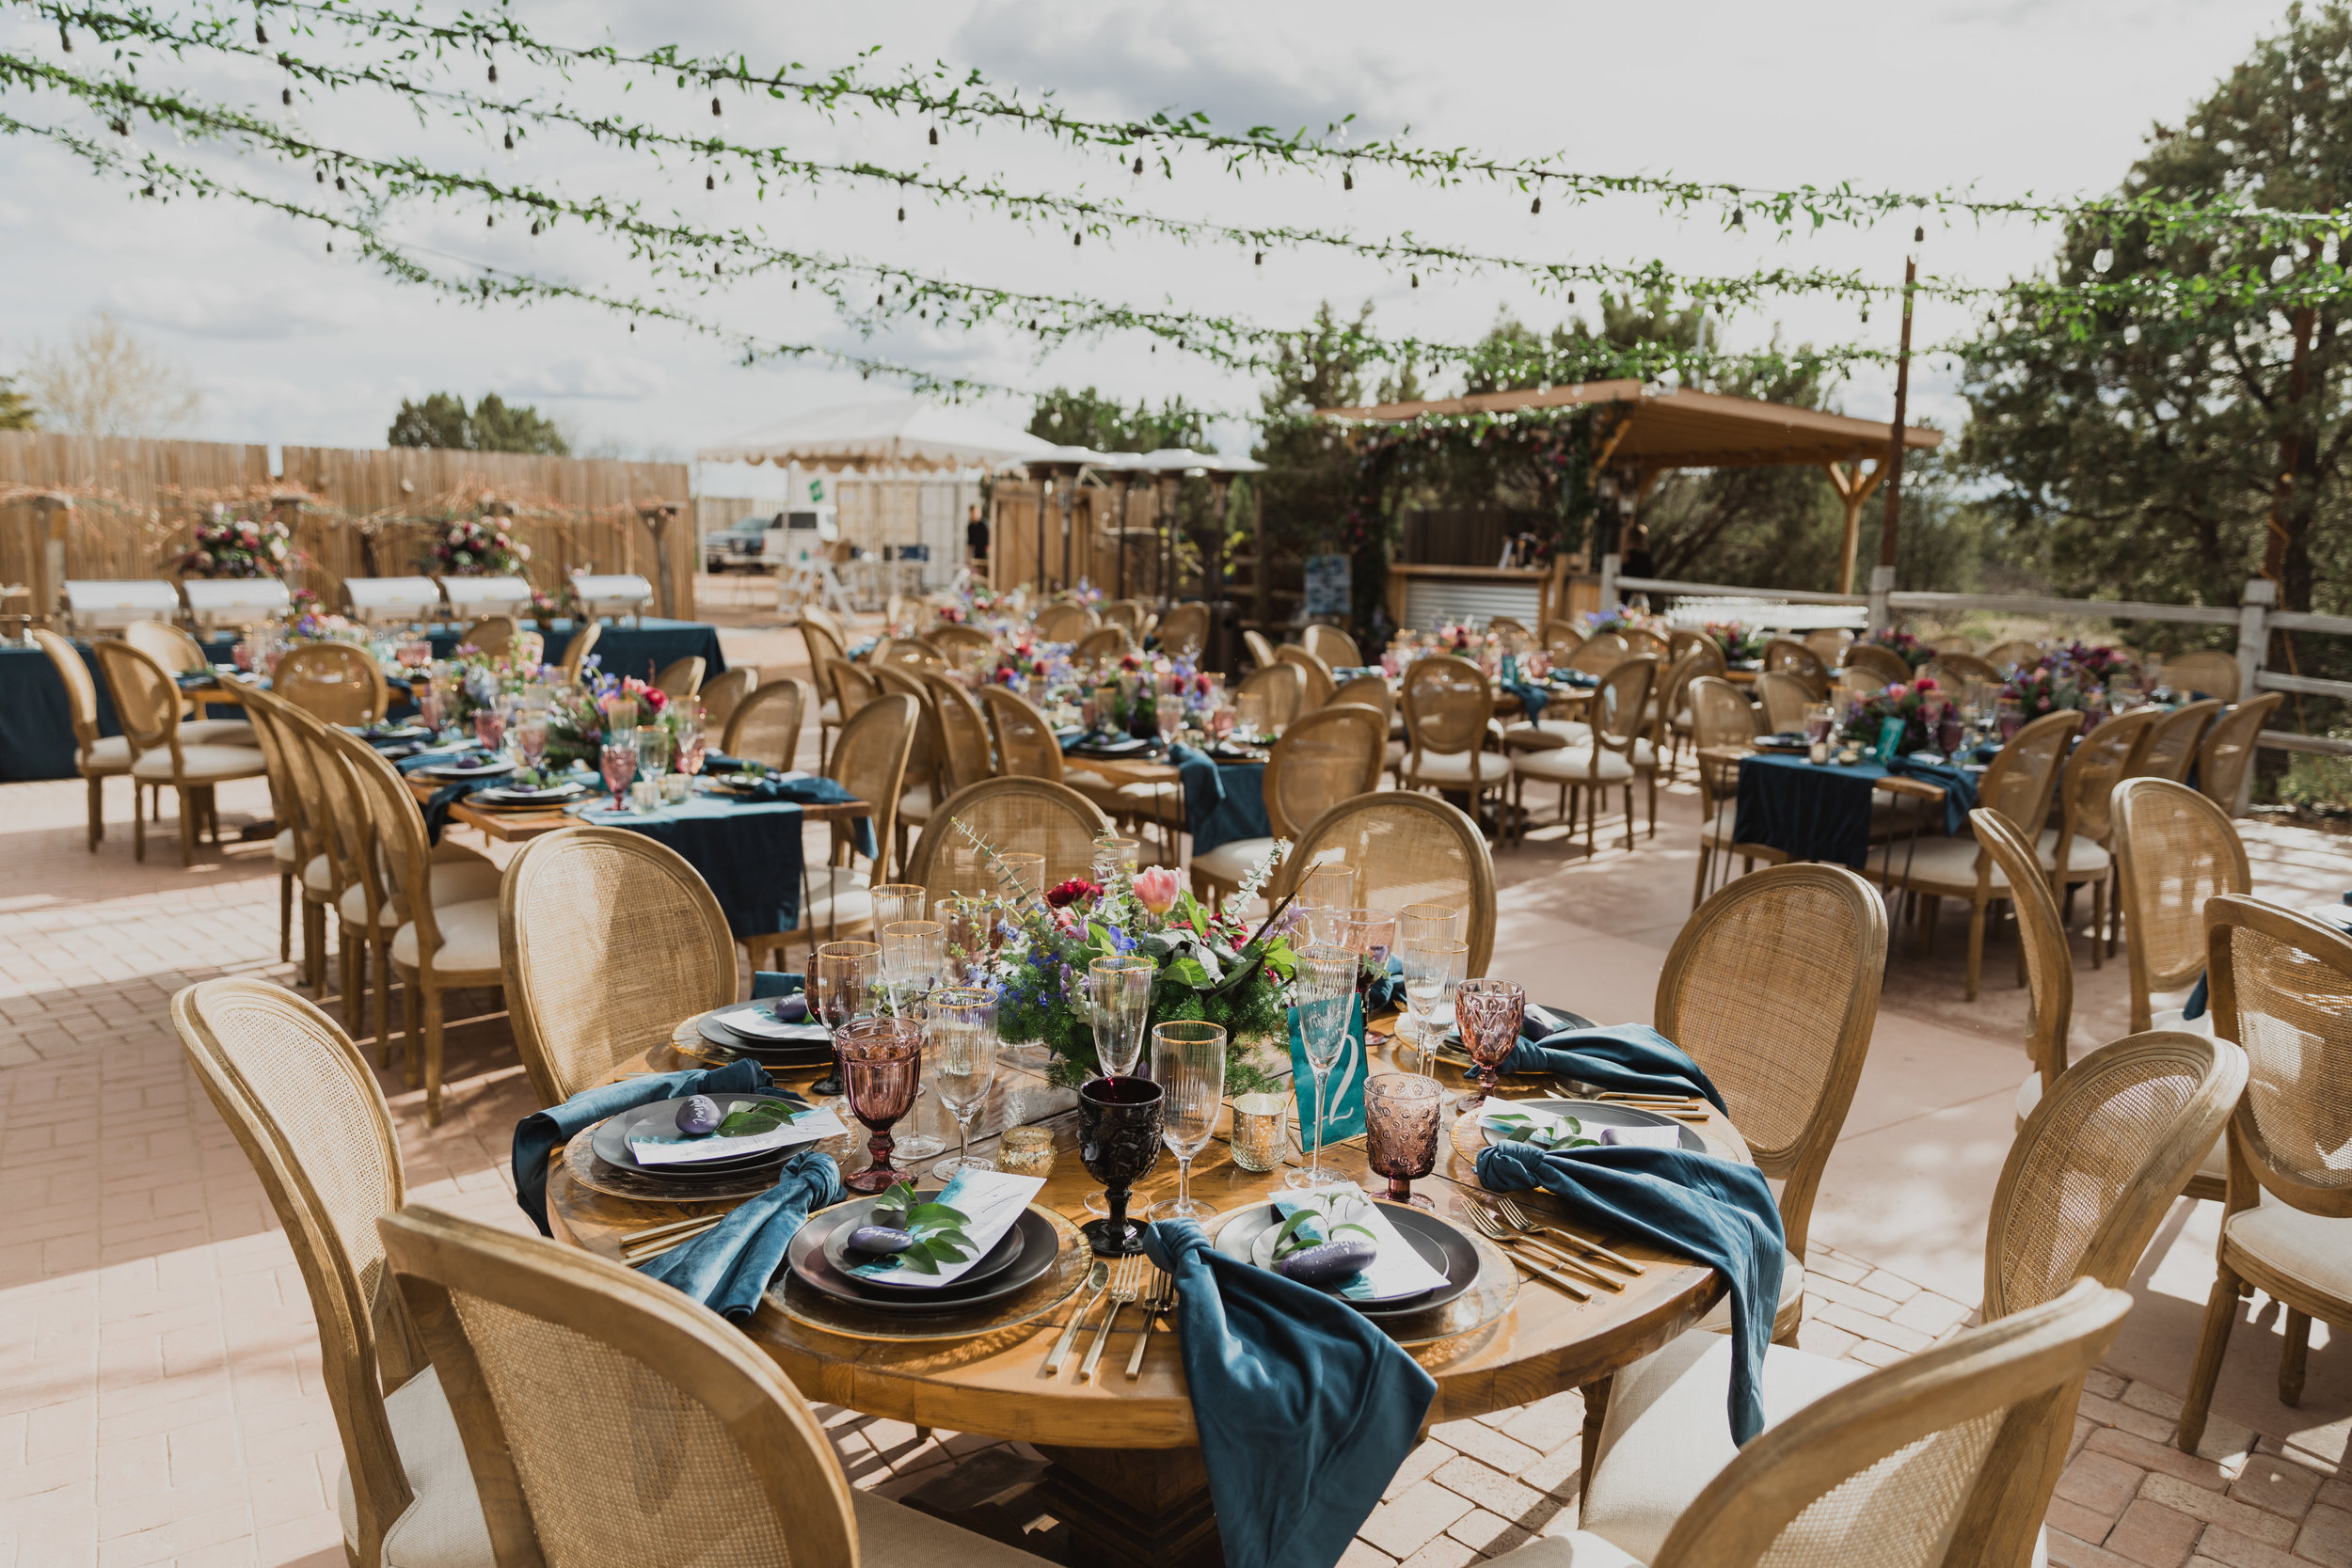 Stars and Moon Inspired Wedding in the Red Rocks of Sedona - Arizona Florist serving Phoenix scottsdale Mesa chandler Flagstaff Prescott - Open Air Wedding Reception with Round and Rectangular Tables